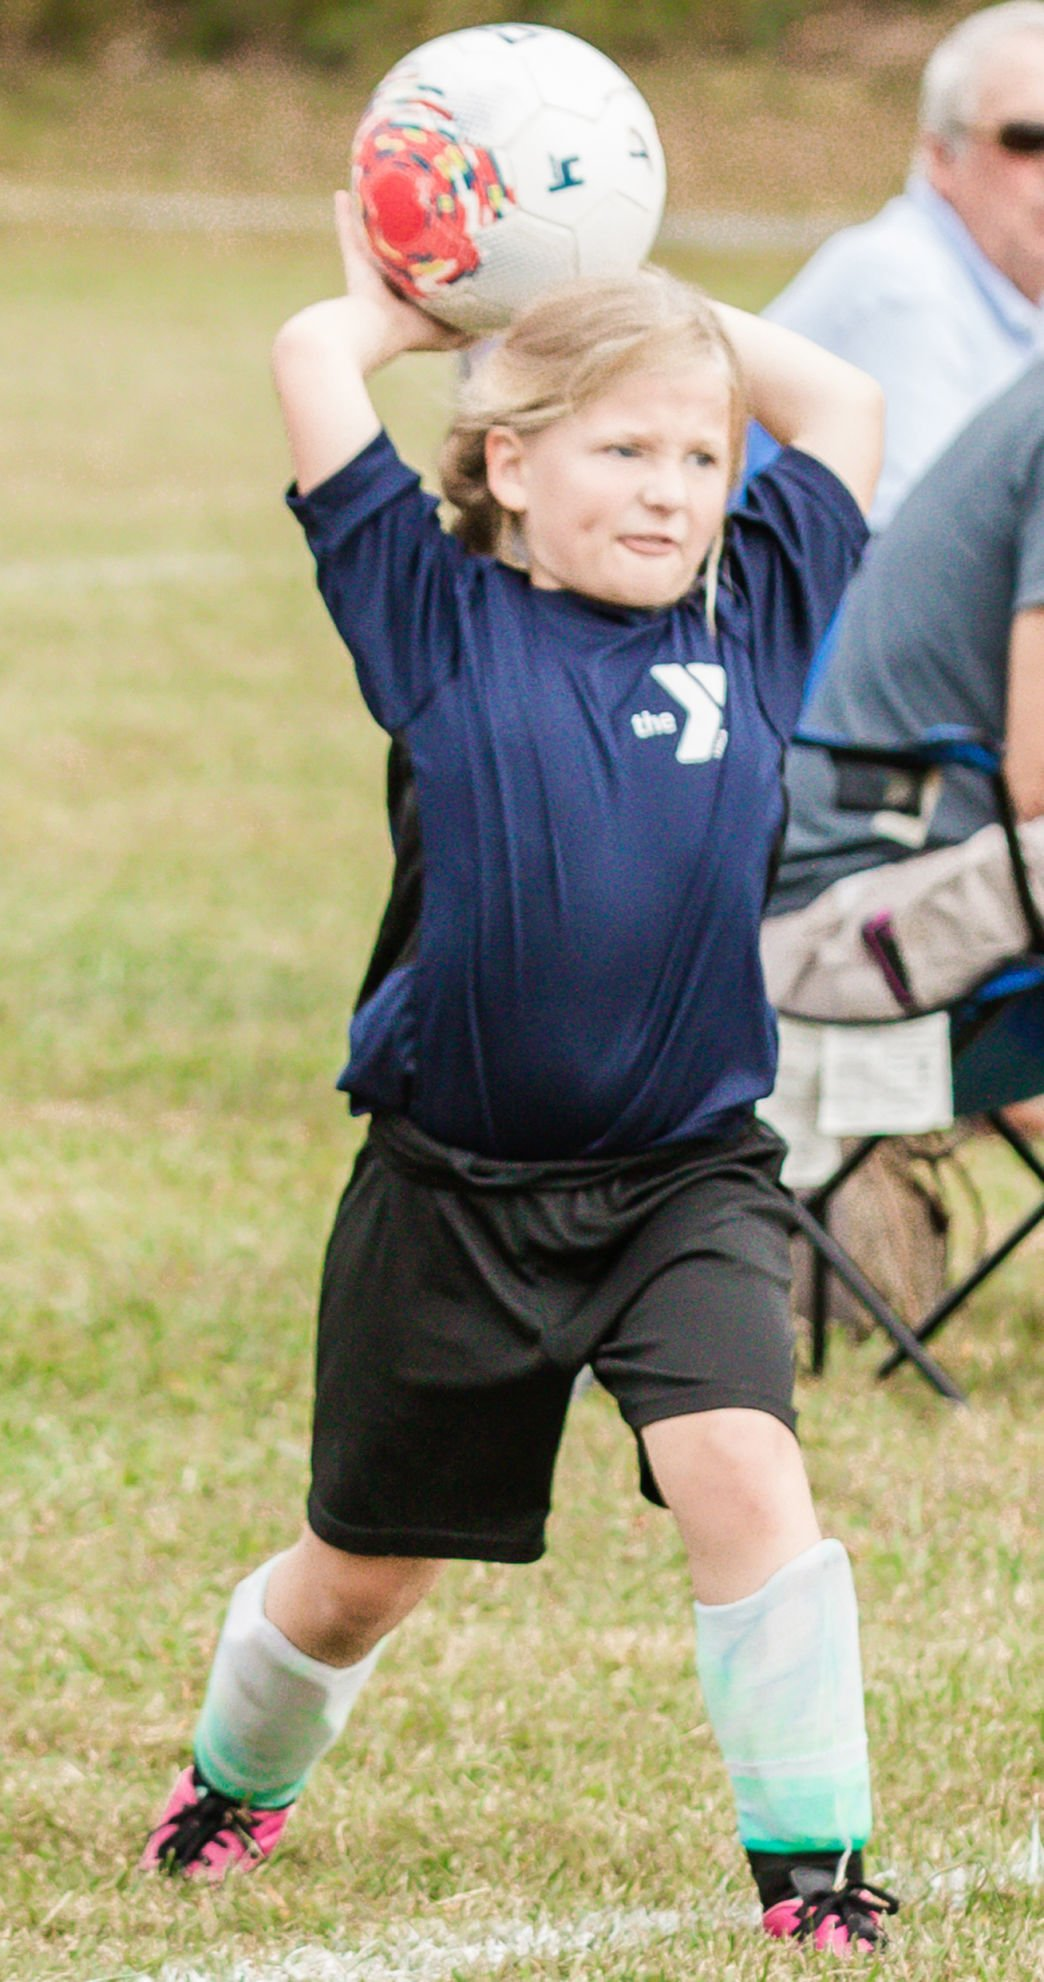 18 sports-youth sports photo page1.jpg